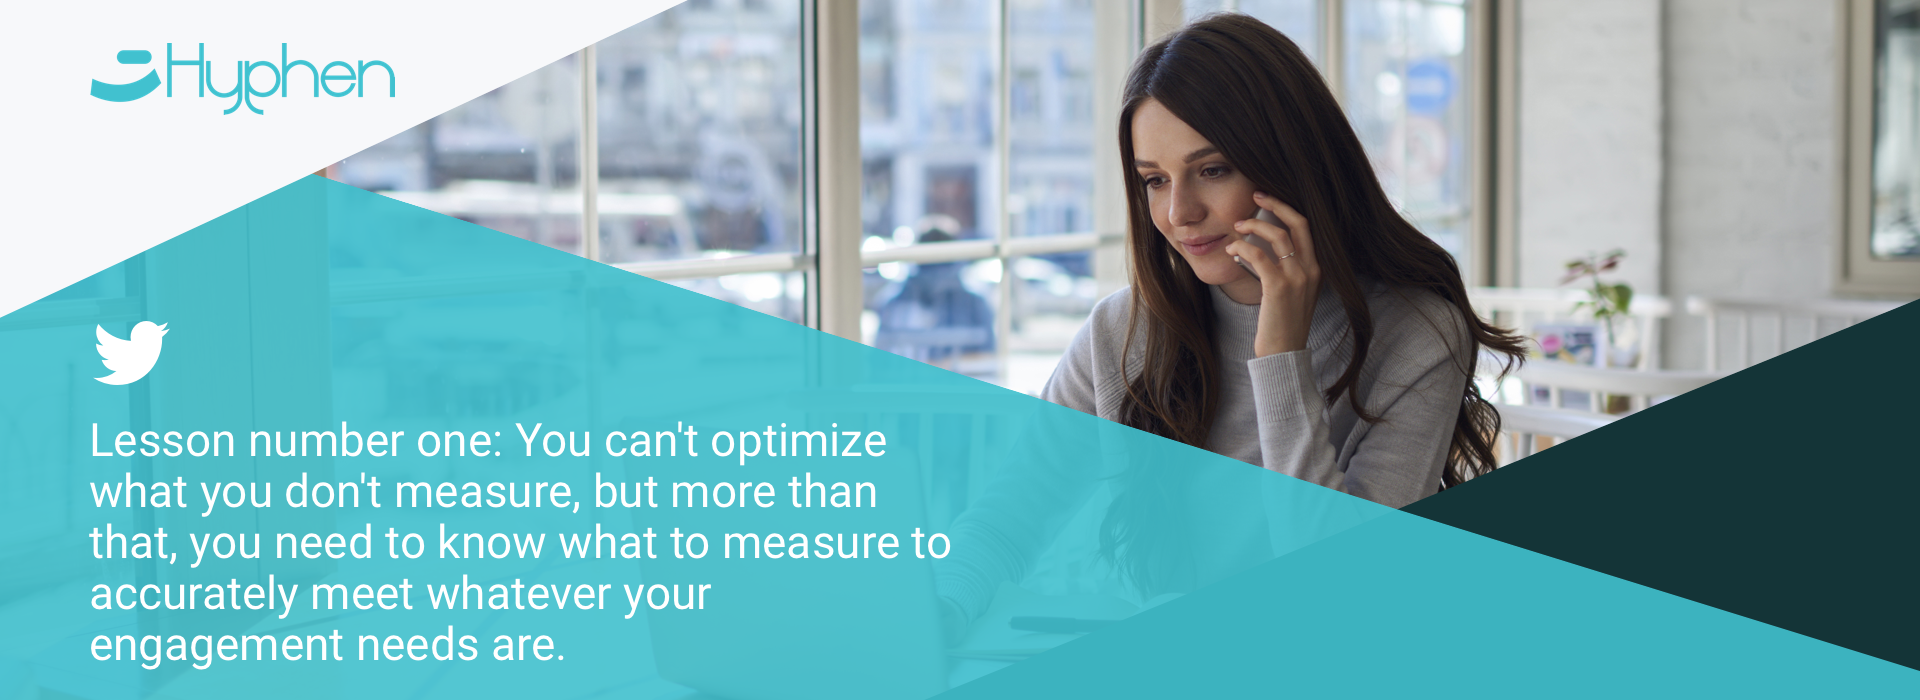 Lesson number one: You can't optimize what you don't measure, but more than that, you need to know what to measure to accurately meet whatever your engagement needs are.